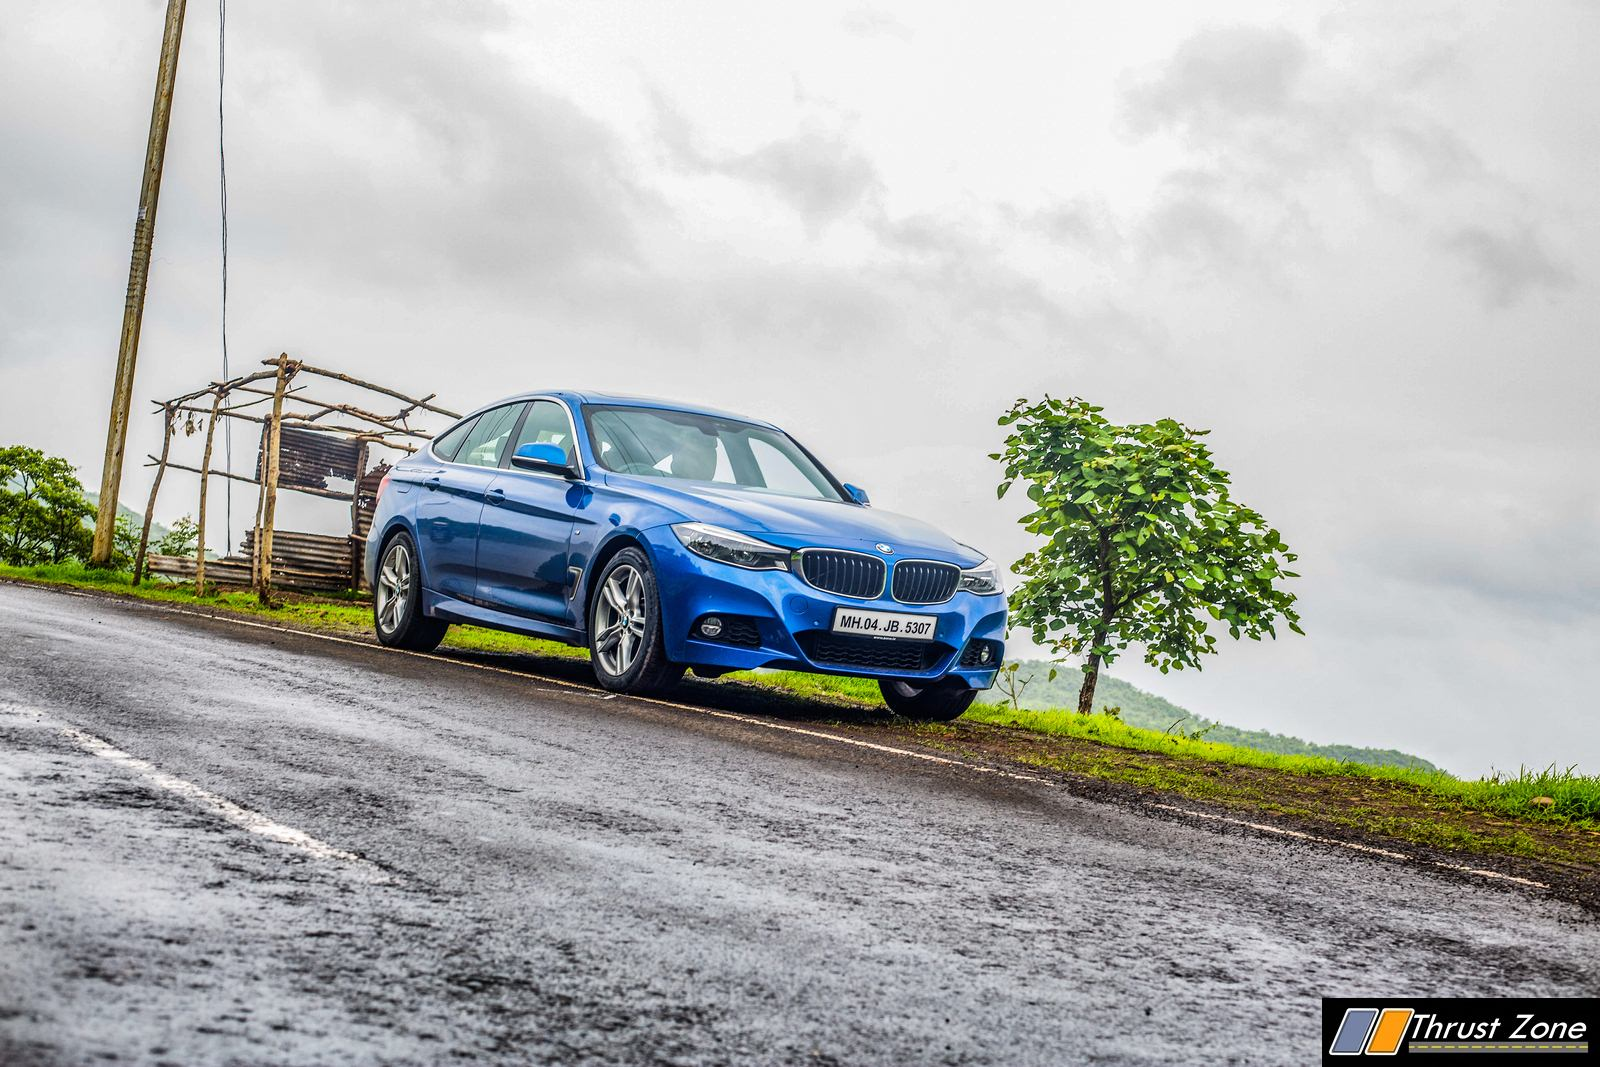 https://www.thrustzone.com/wp-content/uploads/2018/08/BMW-330i-GT-India-Review-2.jpg